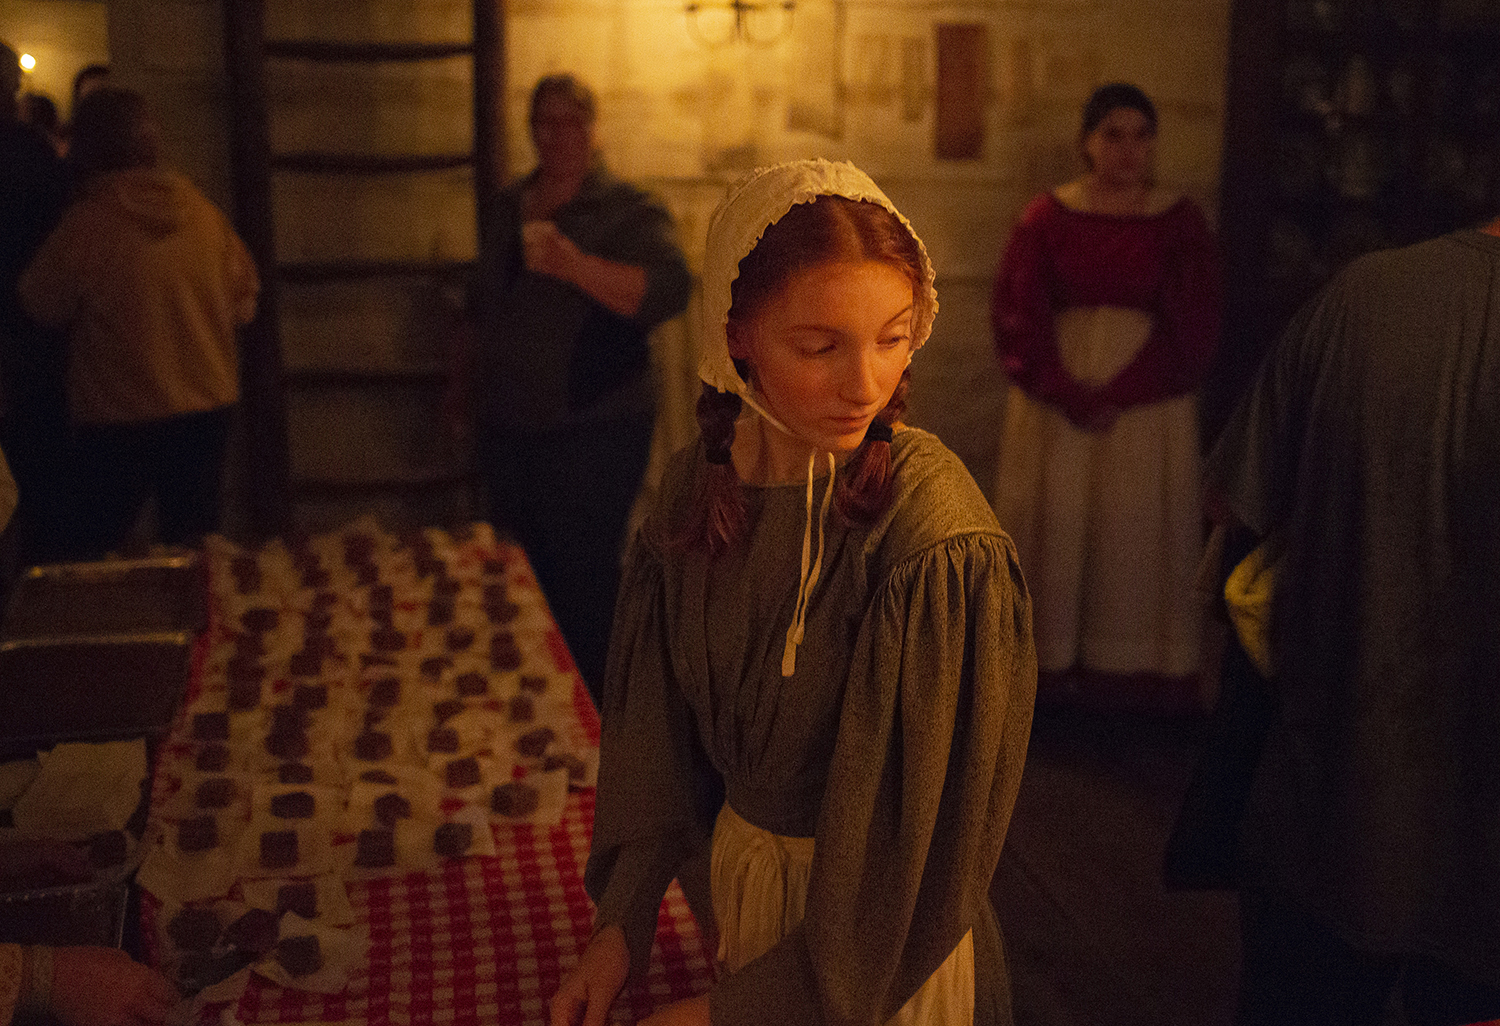 Gwen Chapman serves gingerbread in the Rutledge Tavern during the annual candlelight walk through Lincoln's New Salem State Historic Site Friday, Oct. 5, 2018, in Petersburg, Ill. [Rich Saal/The State Journal-Register]